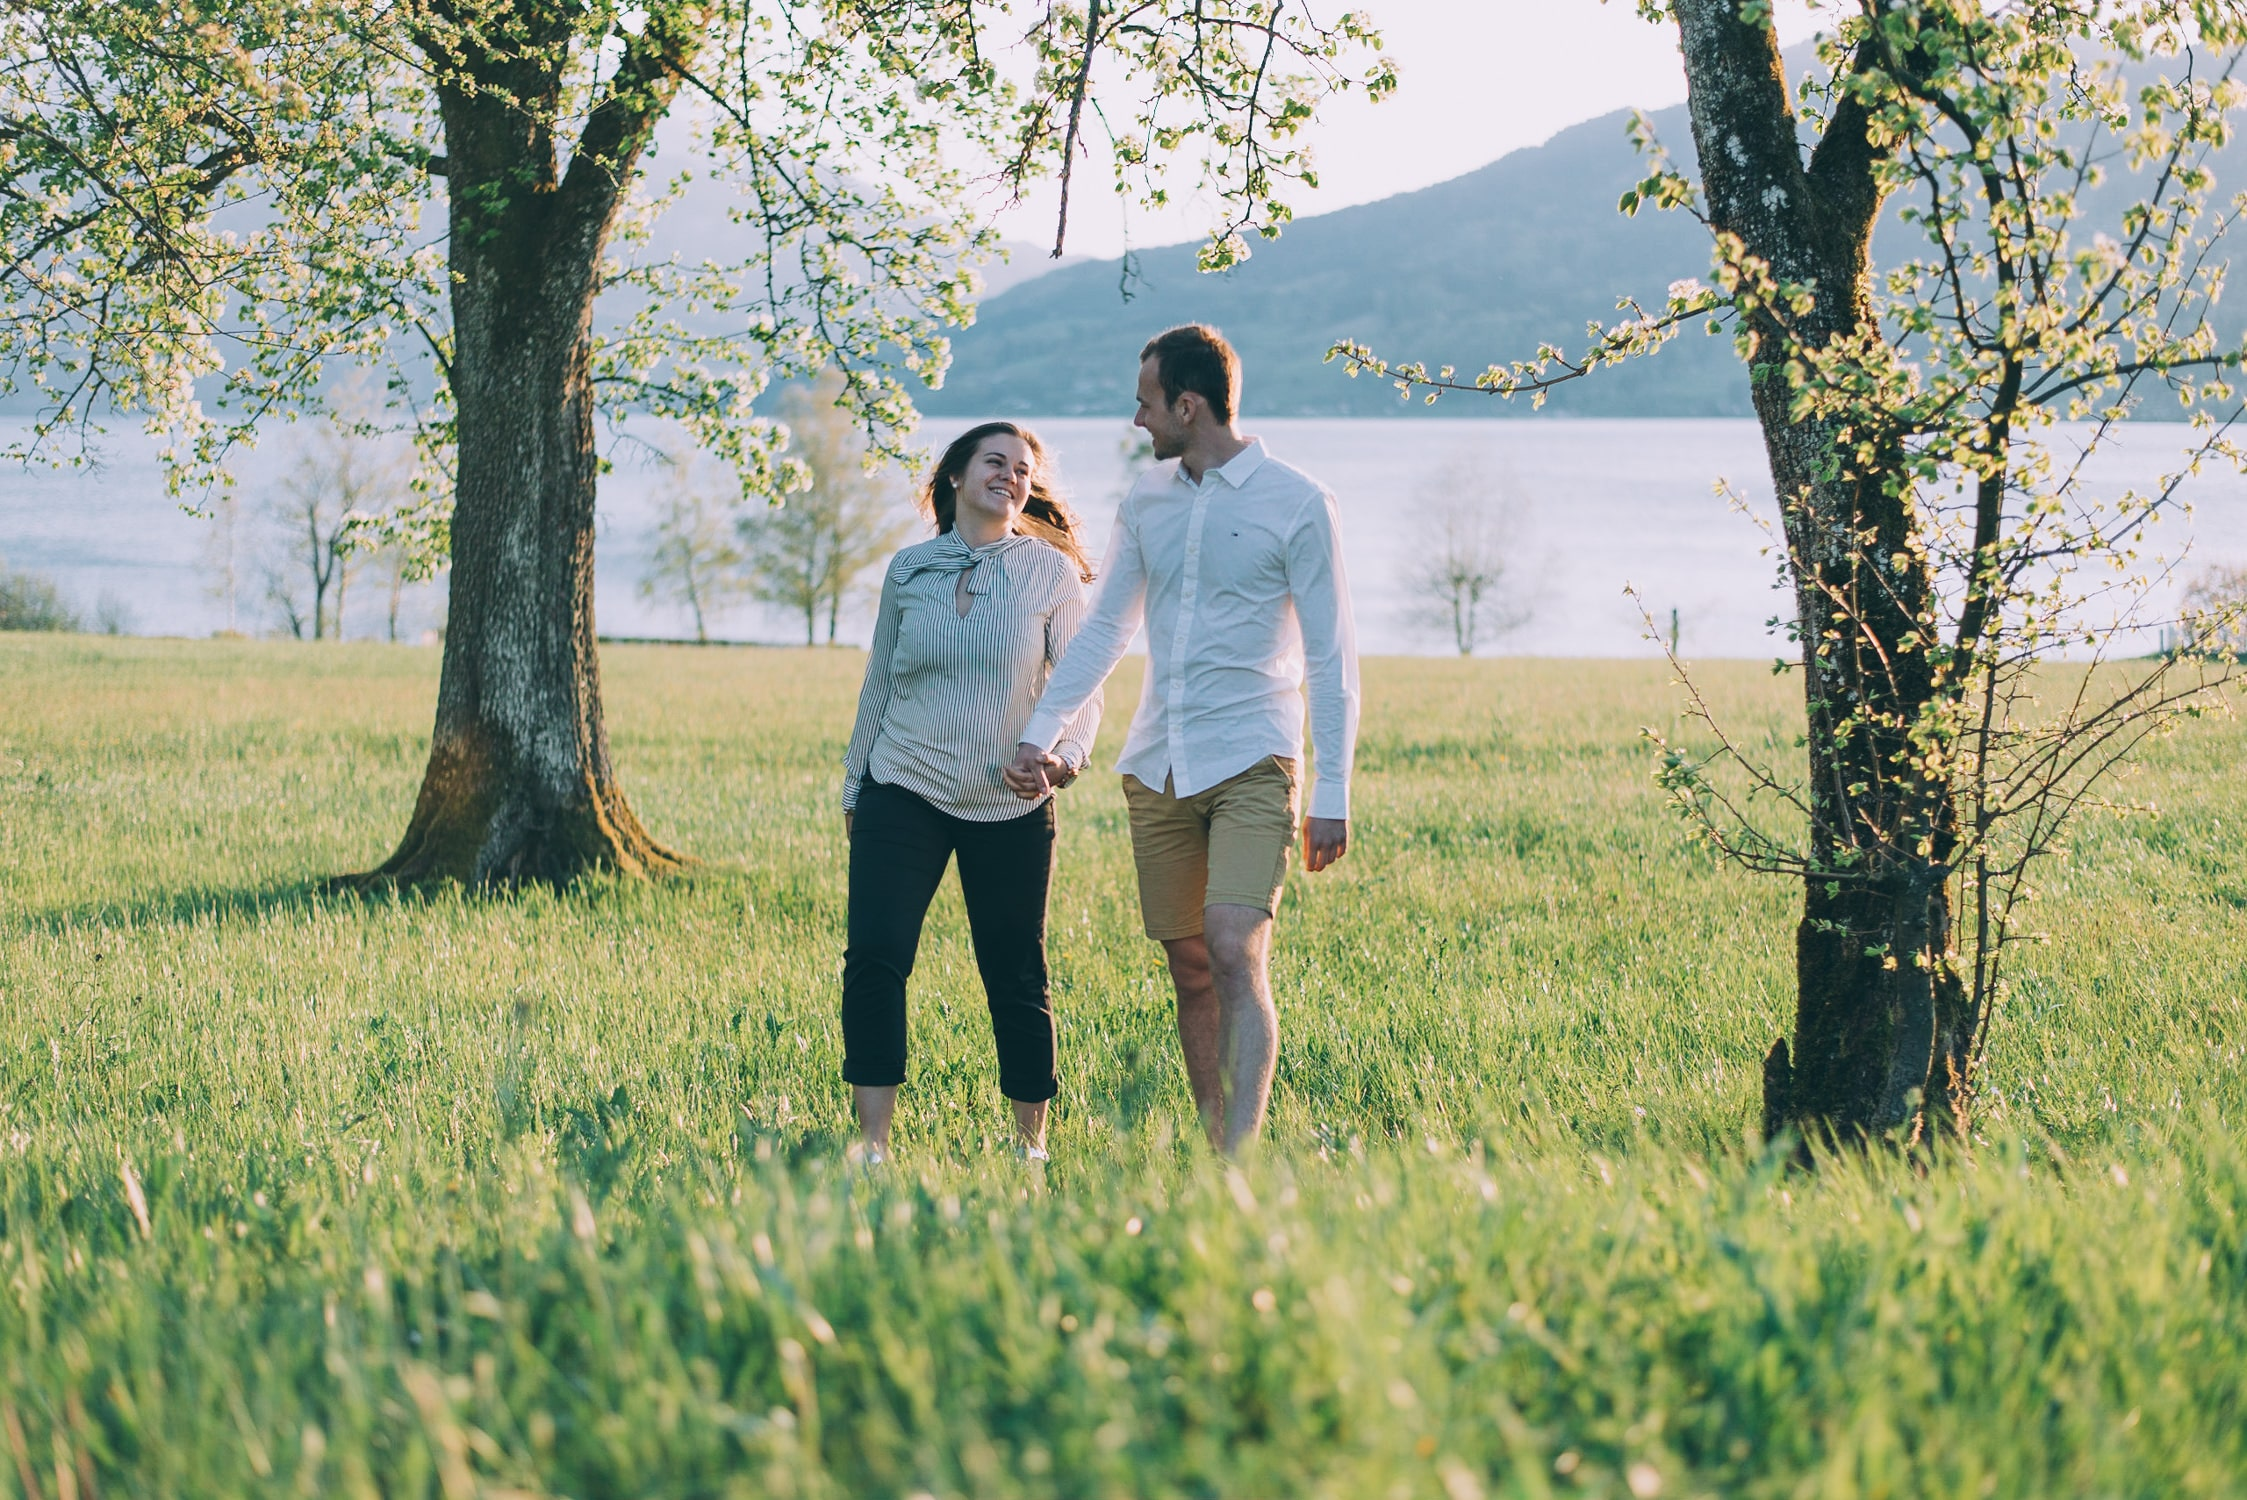 Paarshooting in der Natur am Attersee